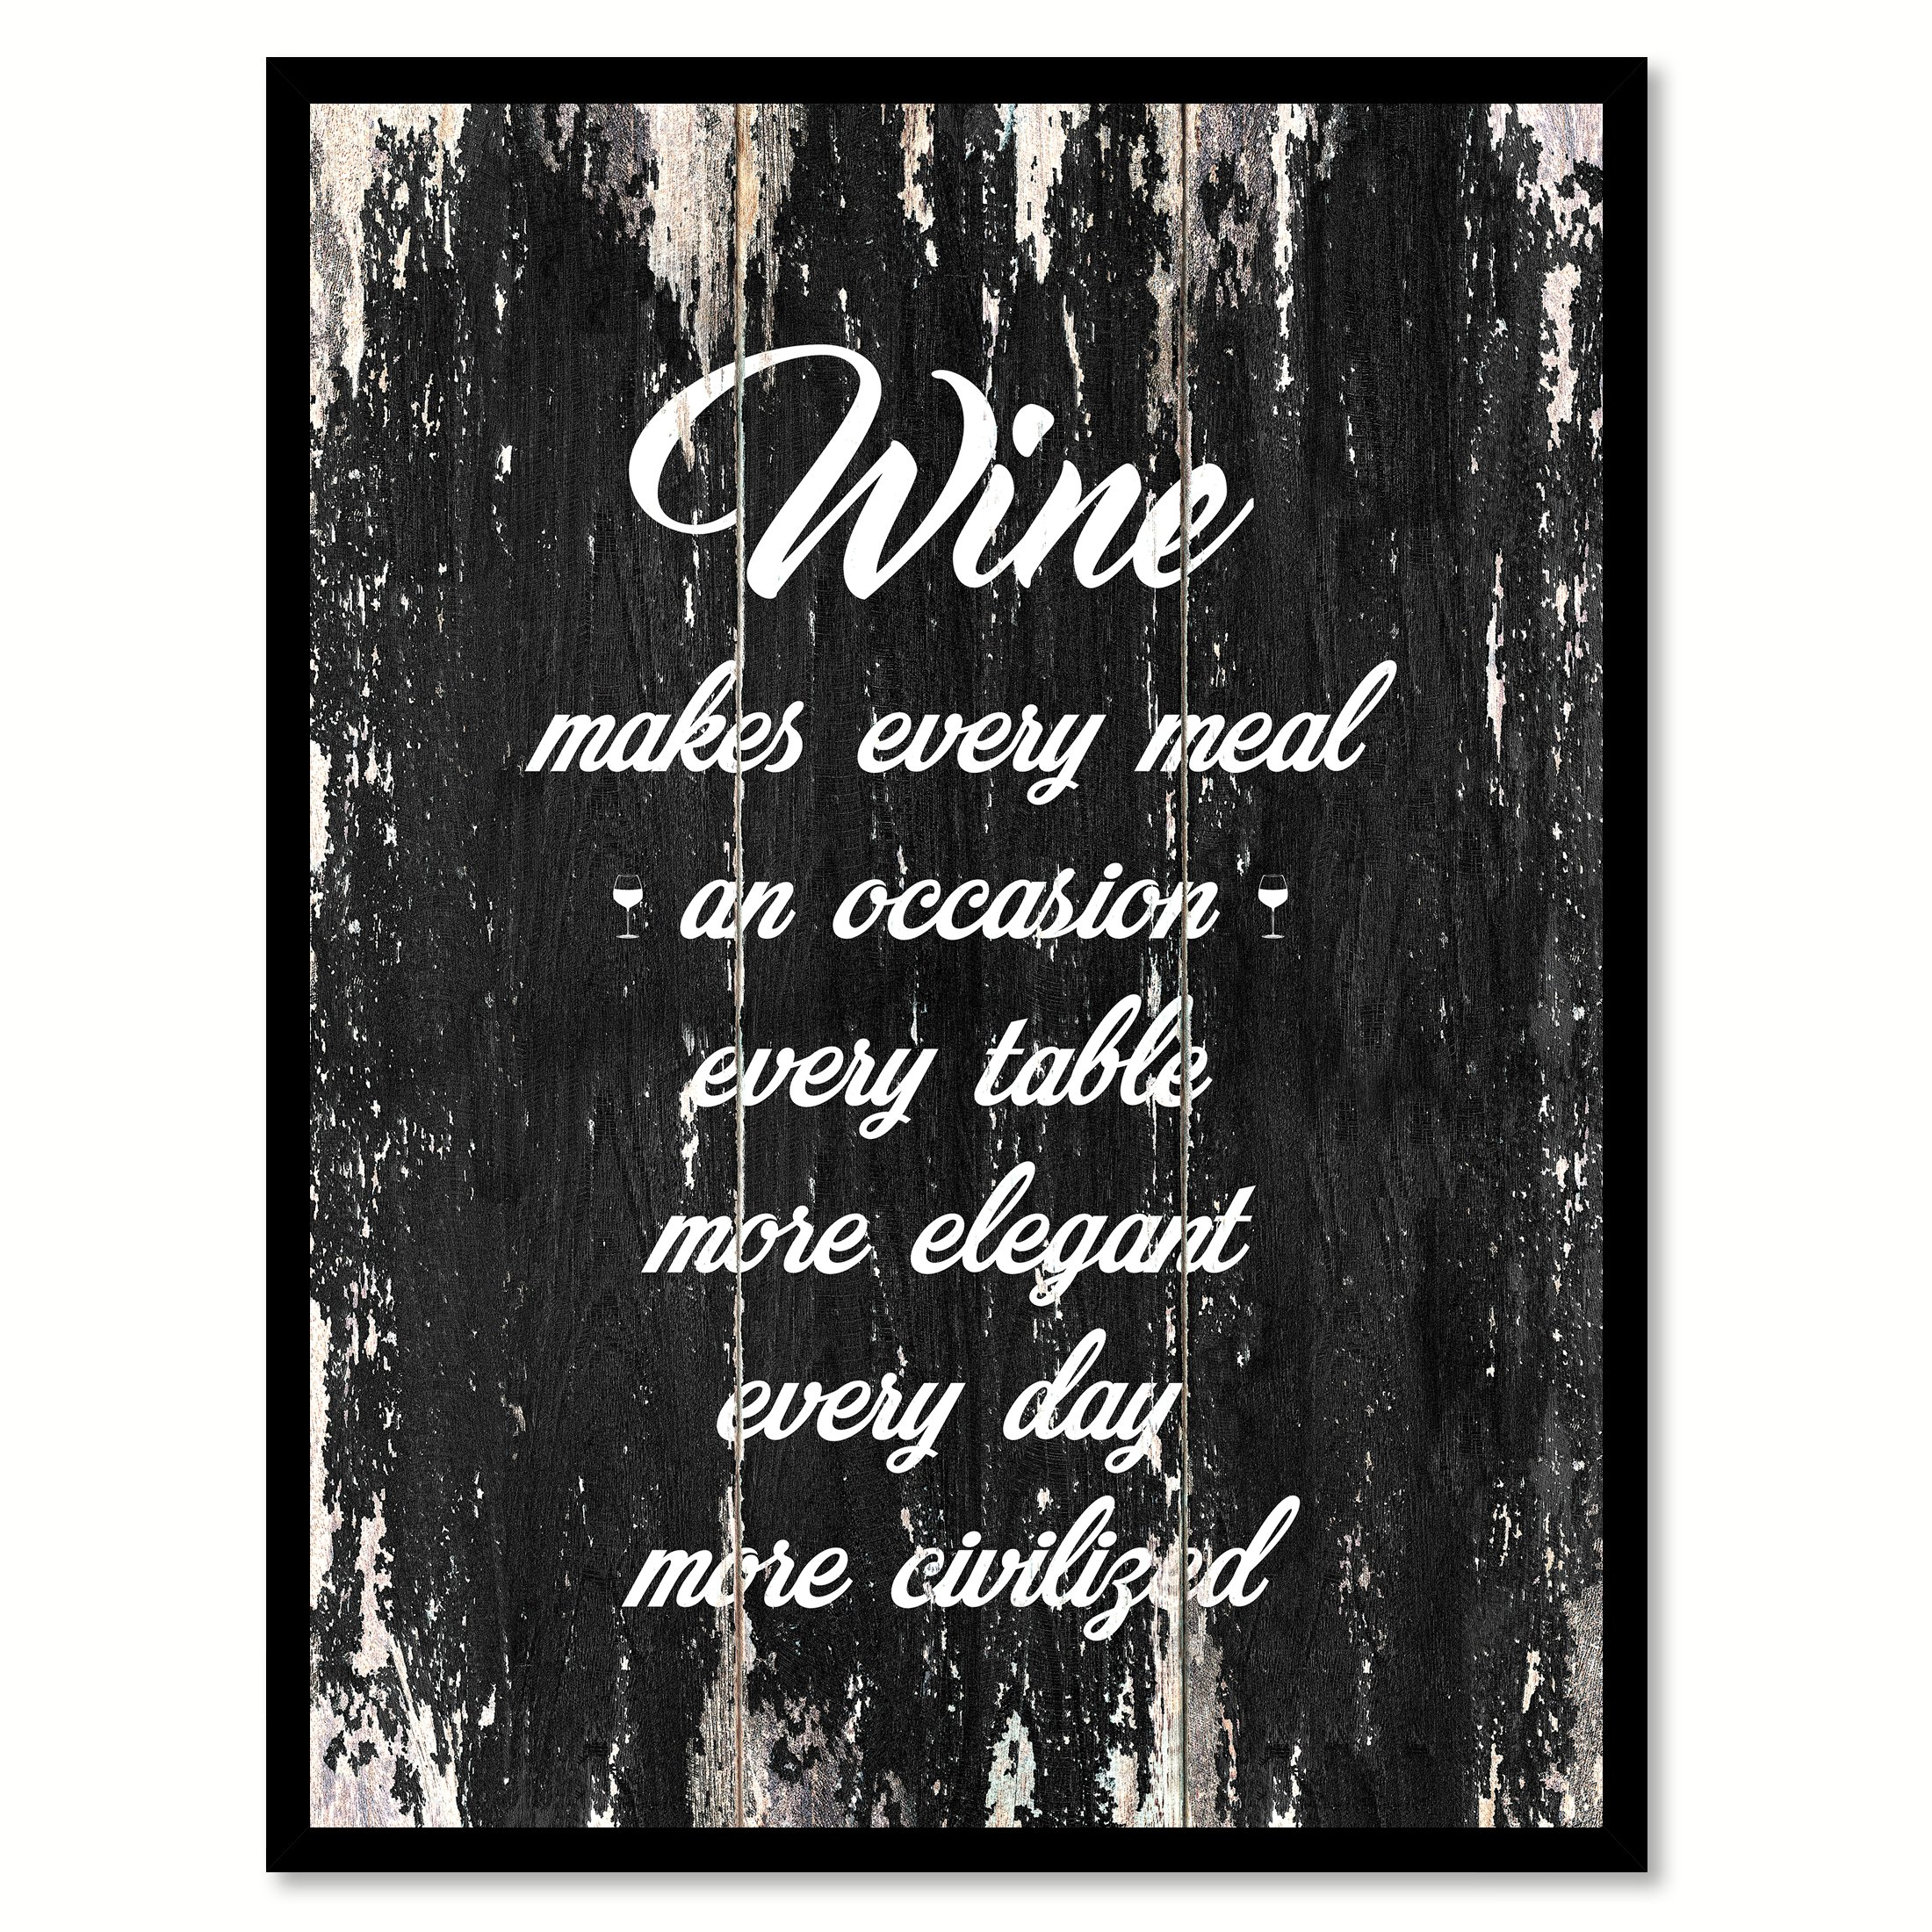 Wine Makes Every Meal An Occasion Every Table More Elegant Every Day More Civilized Quote Saying Canvas Print Picture Frame